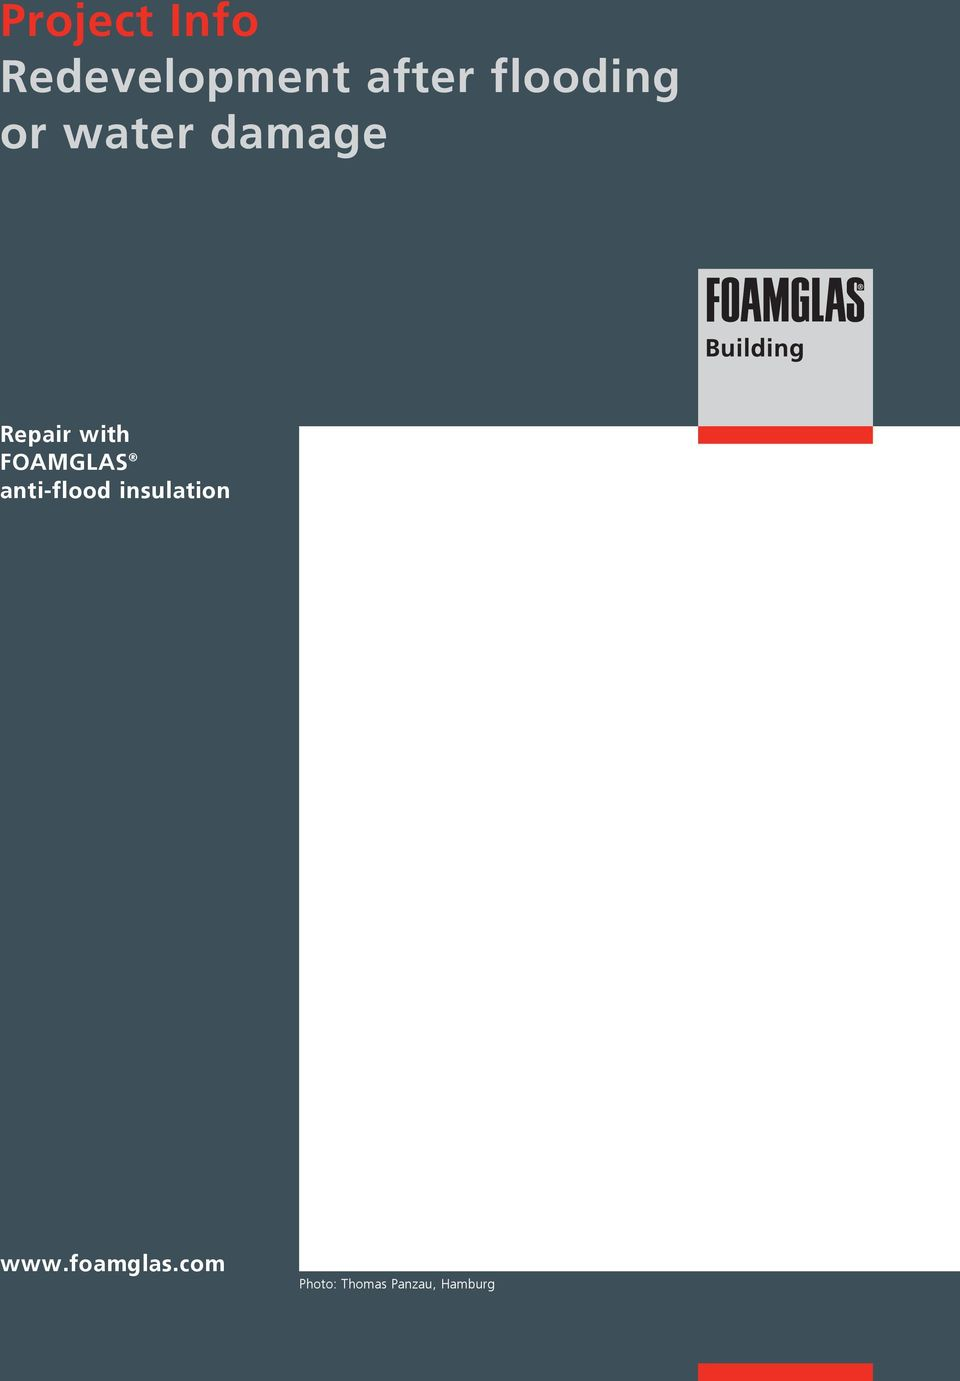 FOAMGLAS anti-flood insulation www.